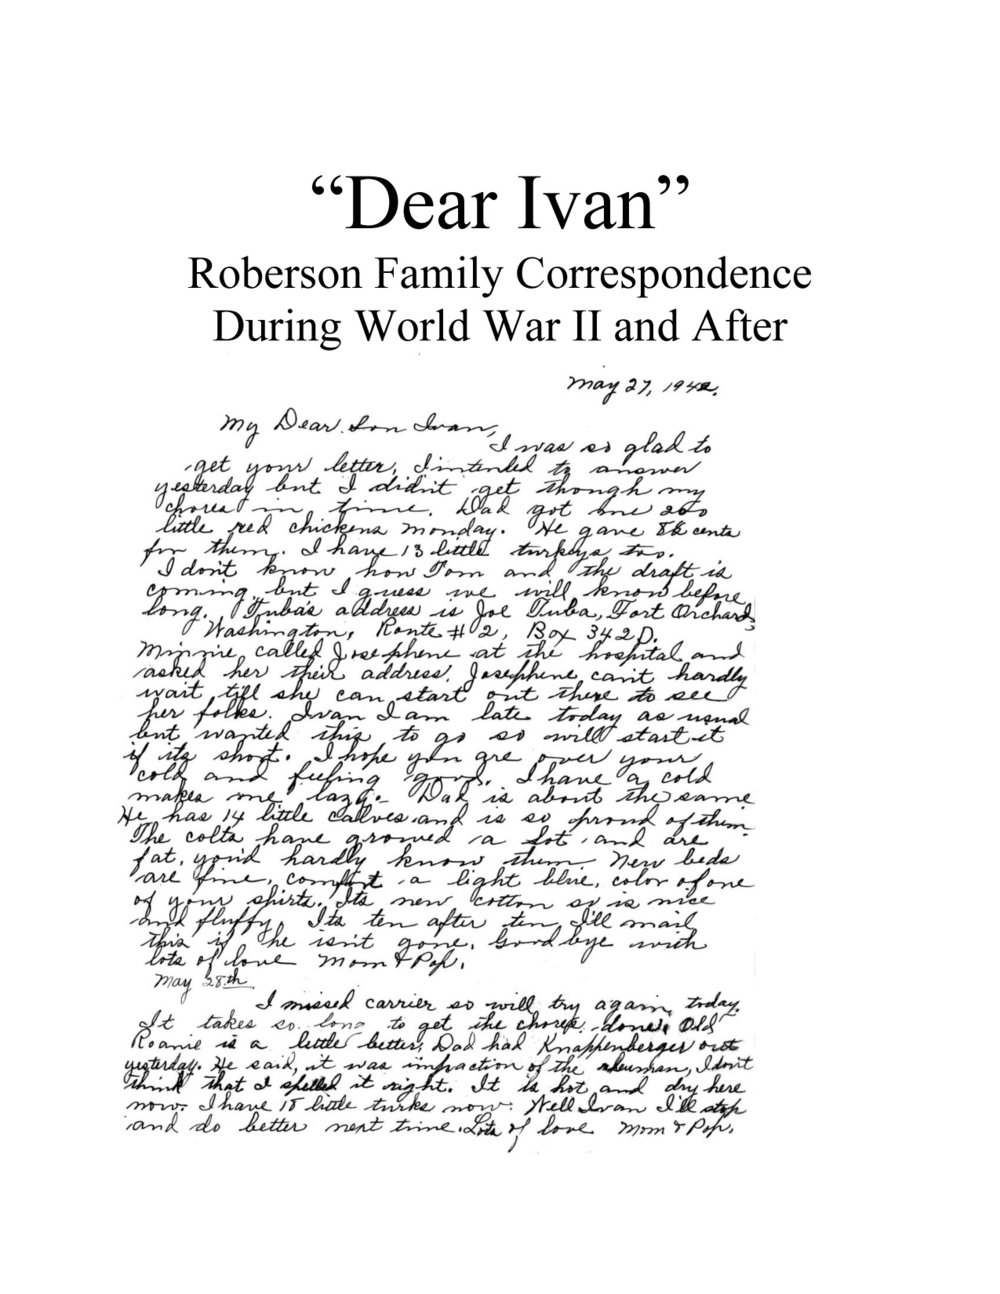 Roberson family correspondence during and after World War II -